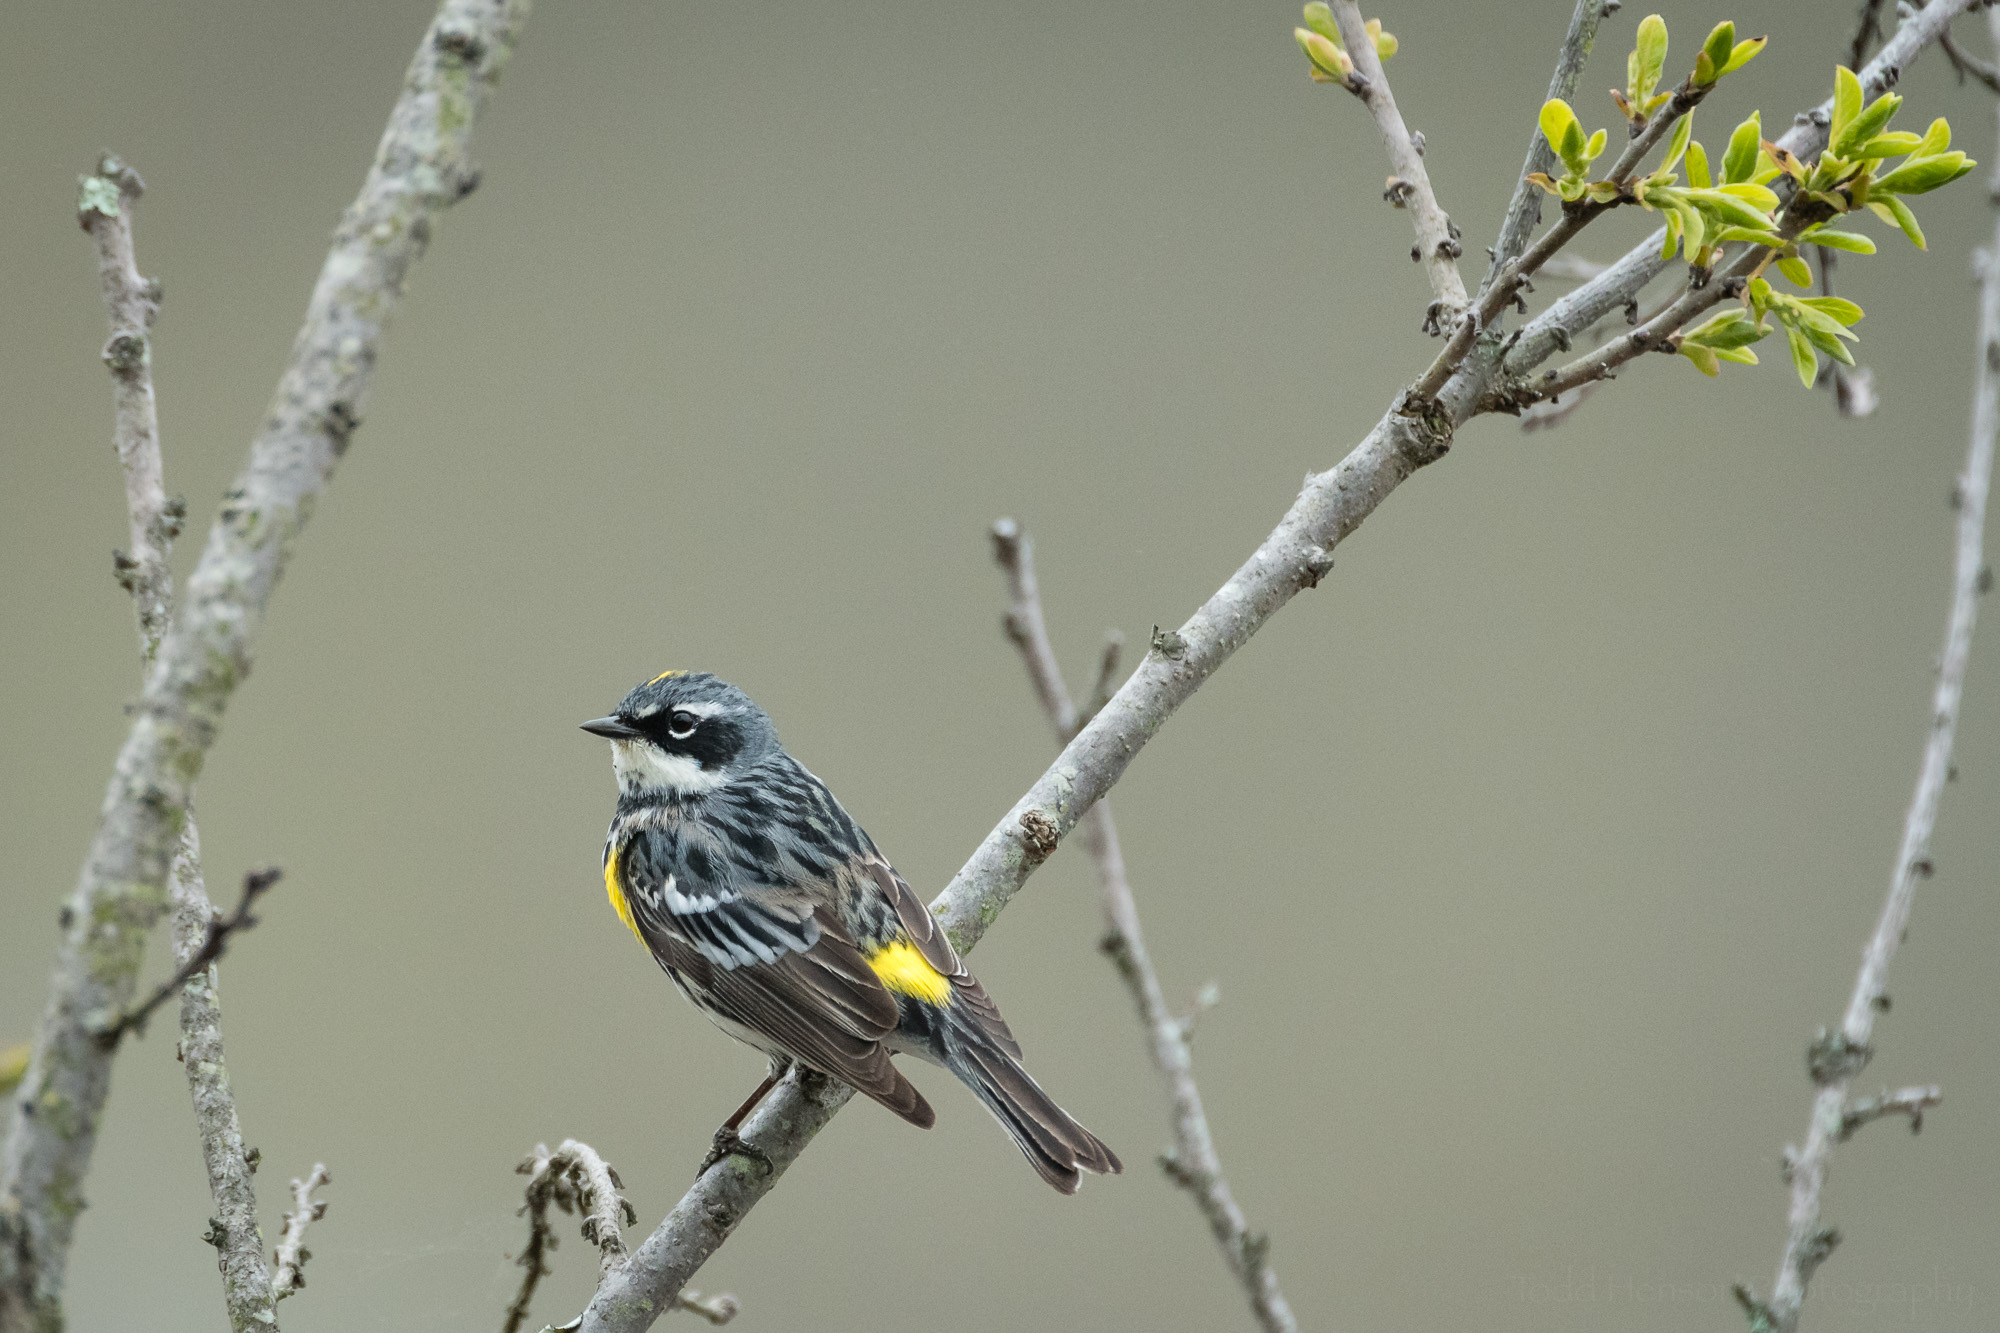 Side view of a Yellow-rumped (Myrtle) Warbler perched in the brush.